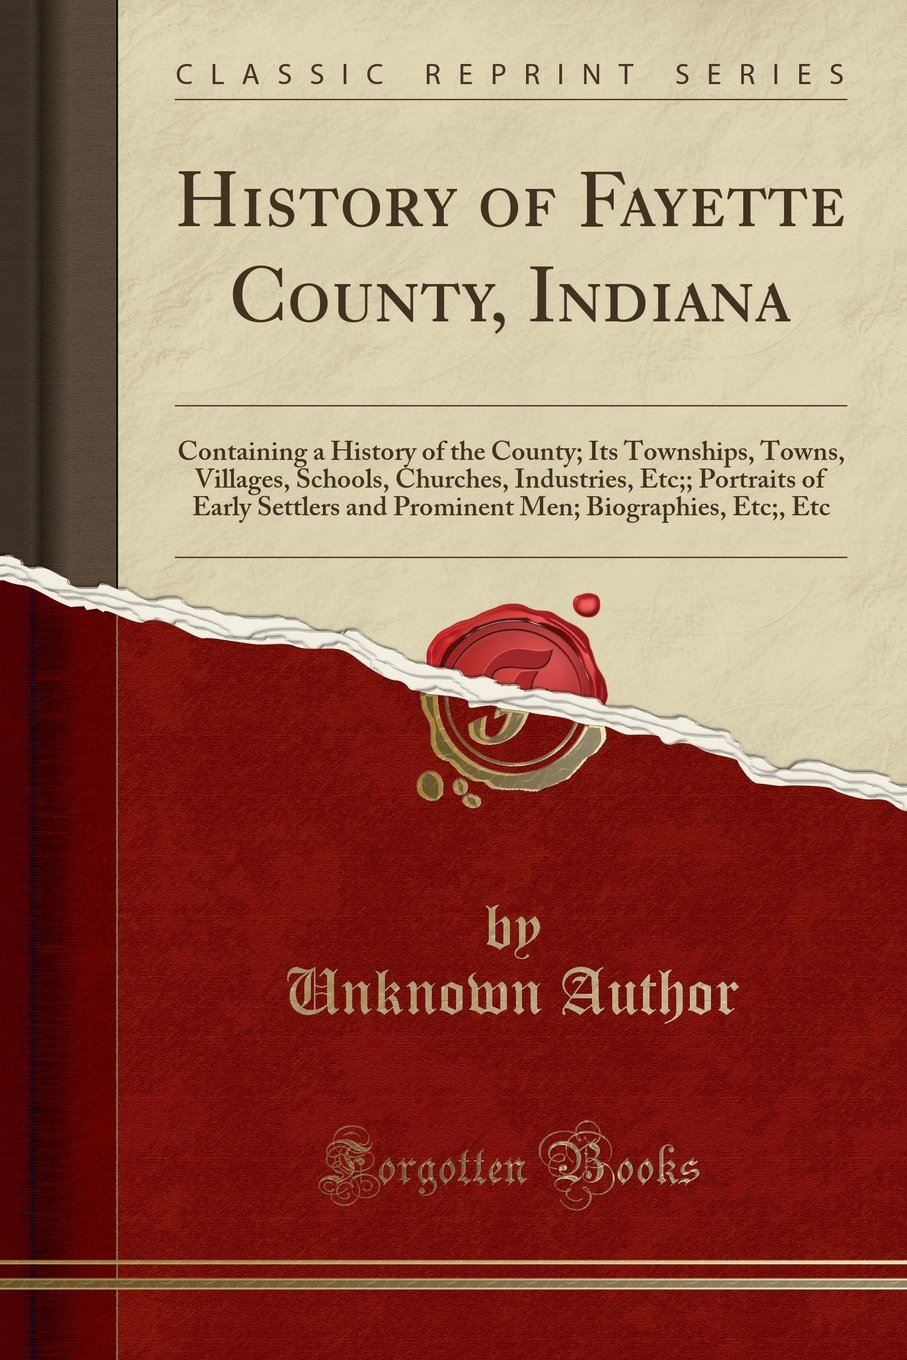 History of Fayette County, Indiana: Containing a History of the County; Its Townships, Towns, Villages, Schools, Churches, Industries, Etc; Portraits Men; Biographies, Etc, Etc (Classic Reprint)